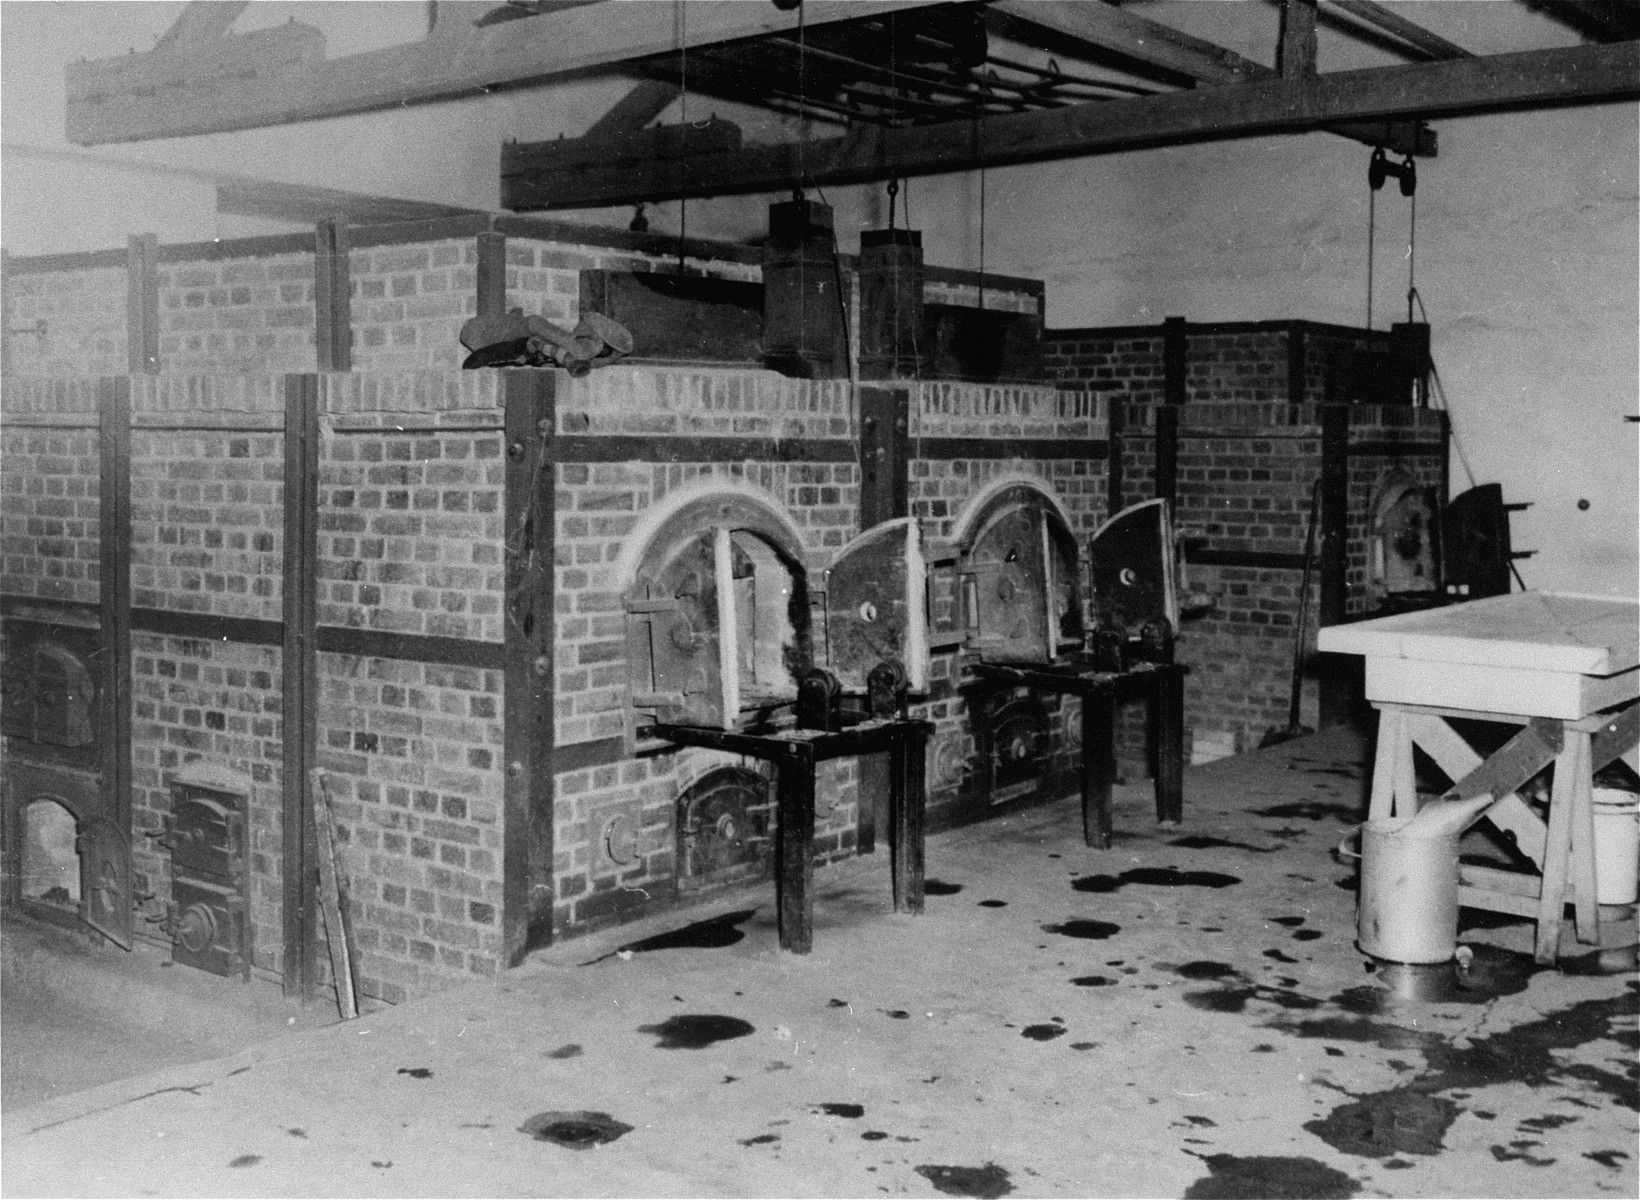 The ovens in the crematorium at Dachau.